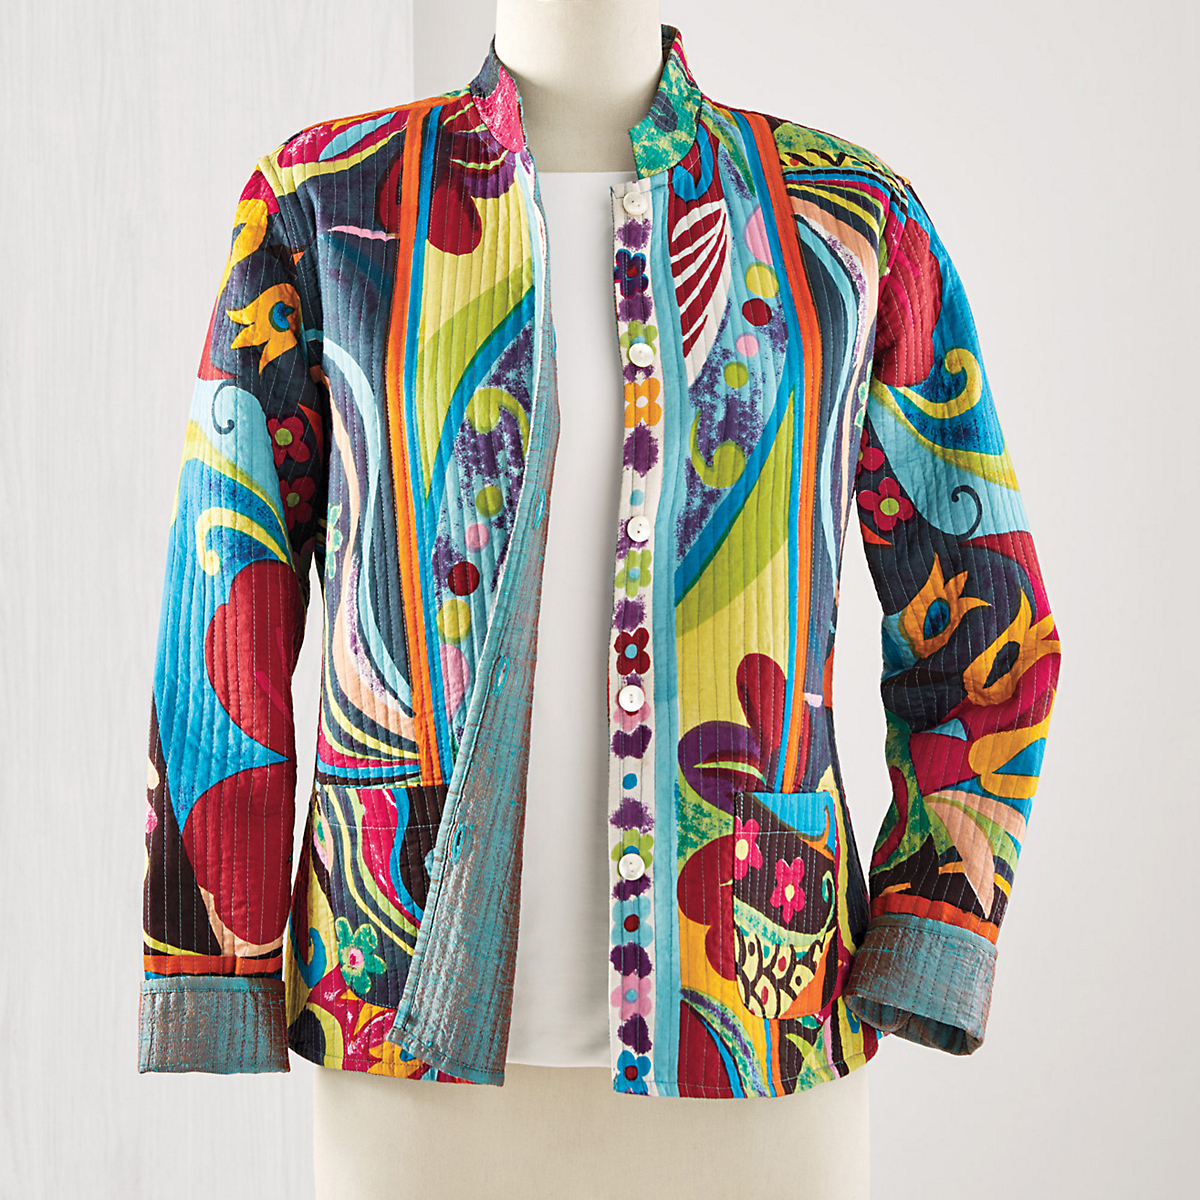 Reversible Art Deco Jacket